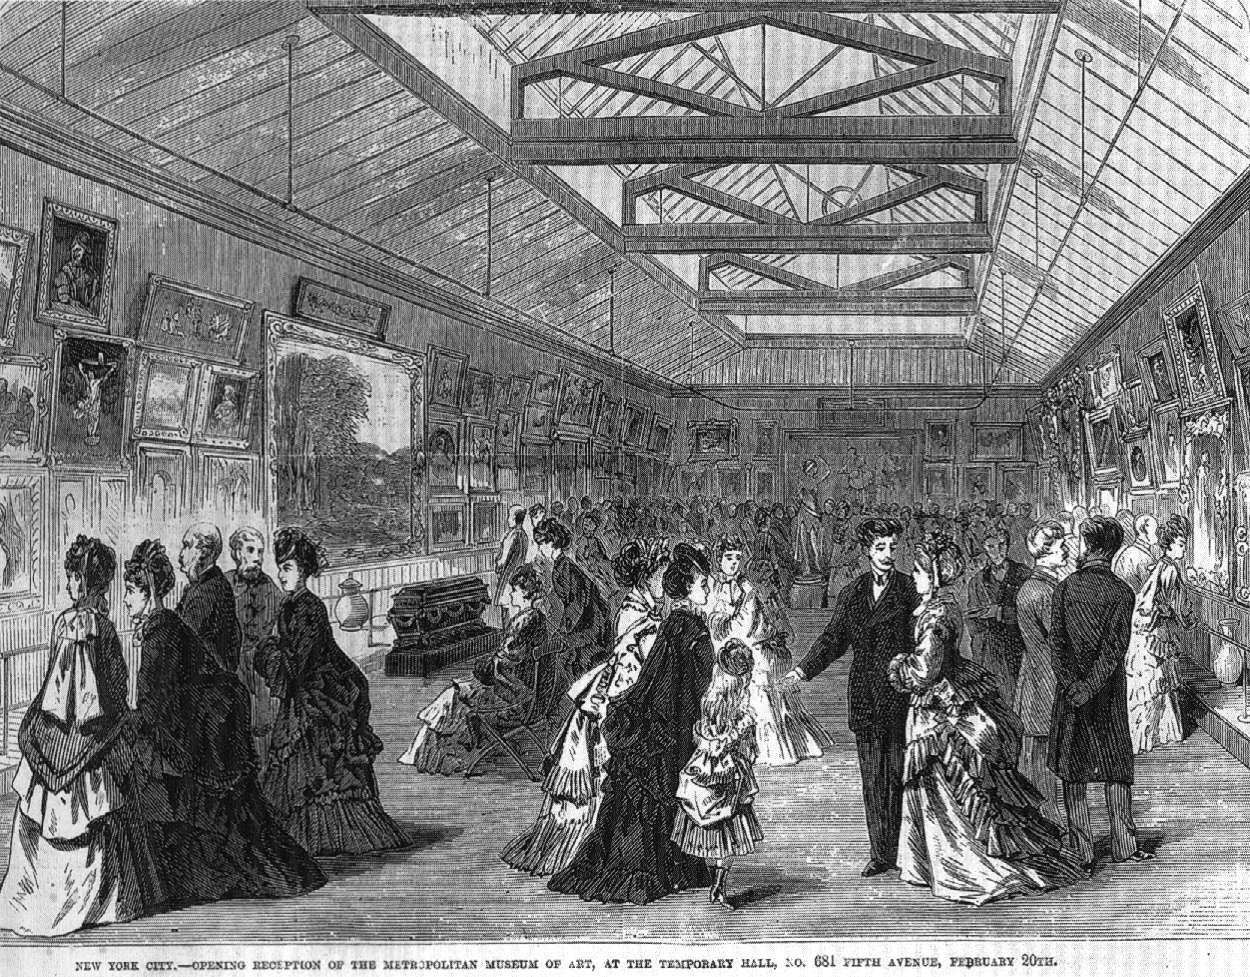 Opening reception in the picture gallery at 681 Fifth Avenue, February 20, 1872. Wood engraving published in Frank Leslie's Weekly, March 9, 1872.